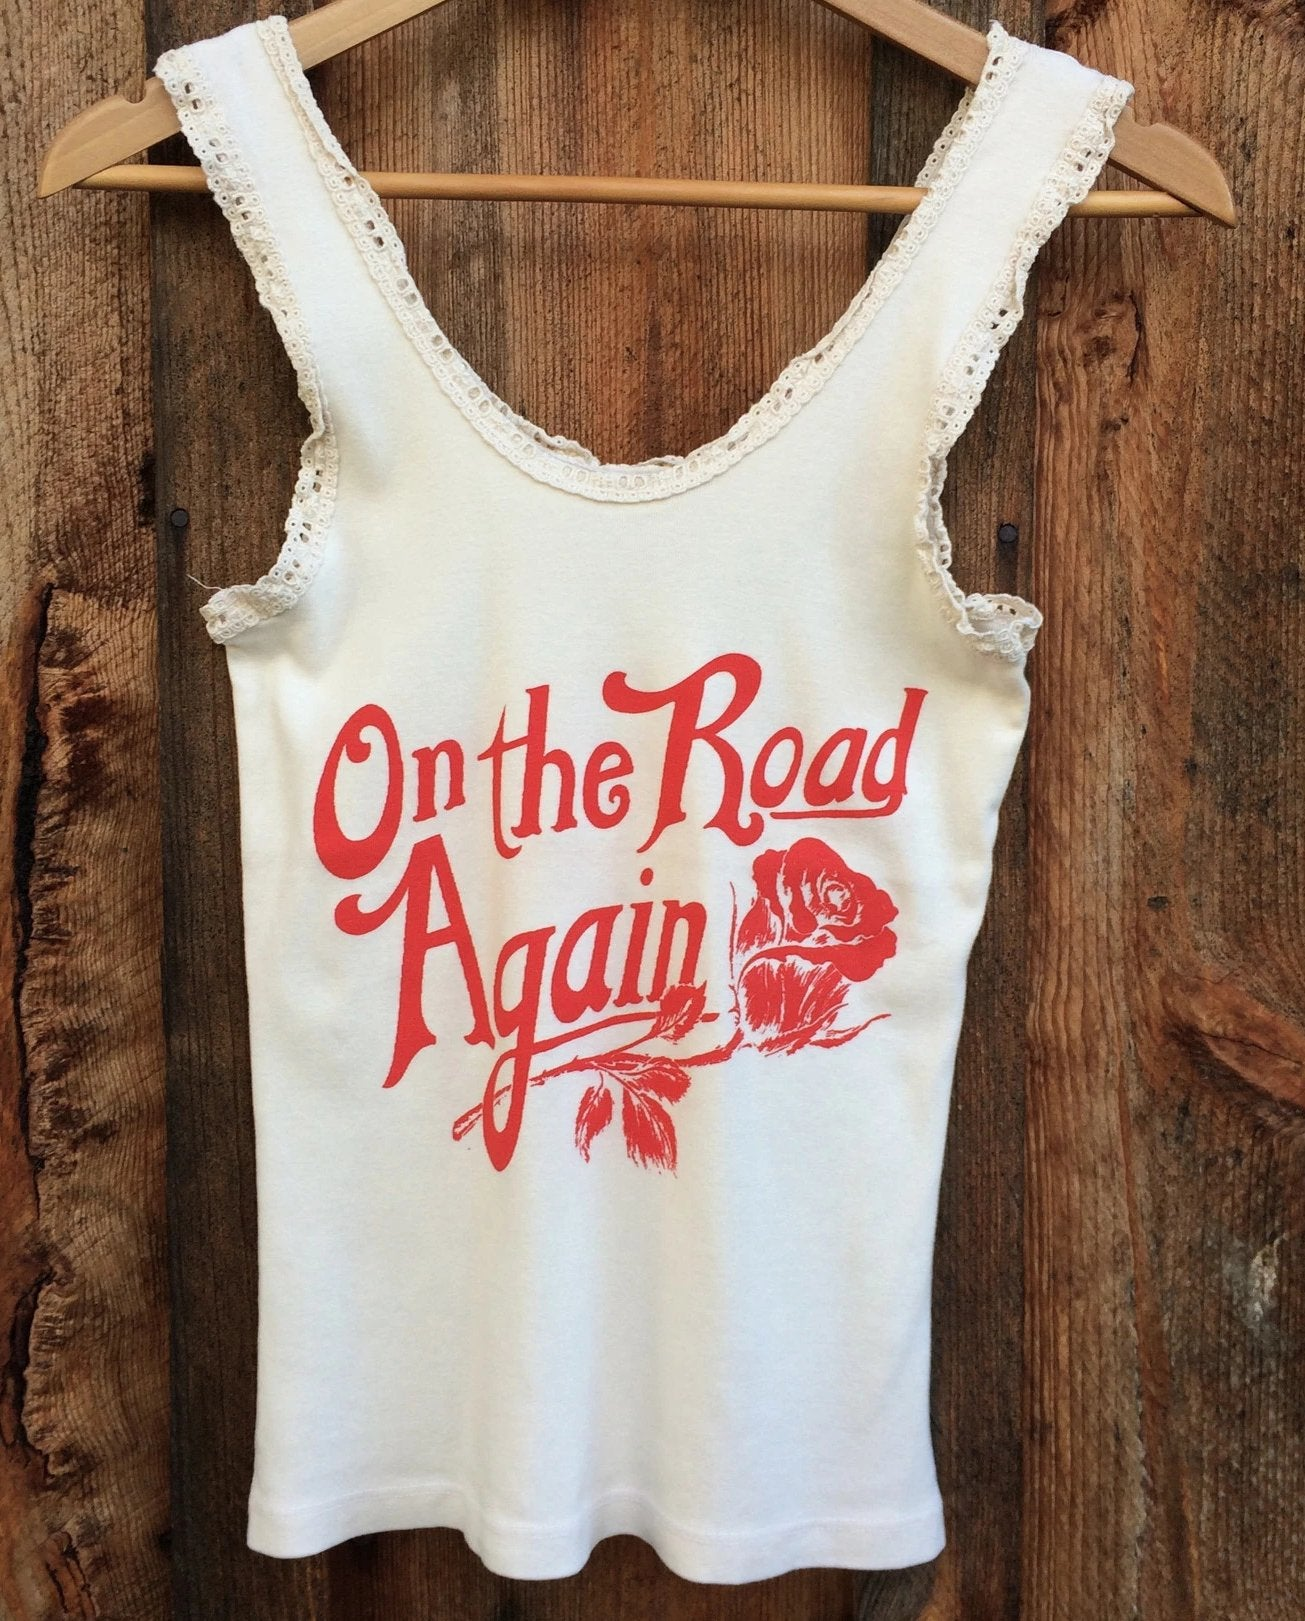 On The Road Again Vintage Lace Tank, White/Red